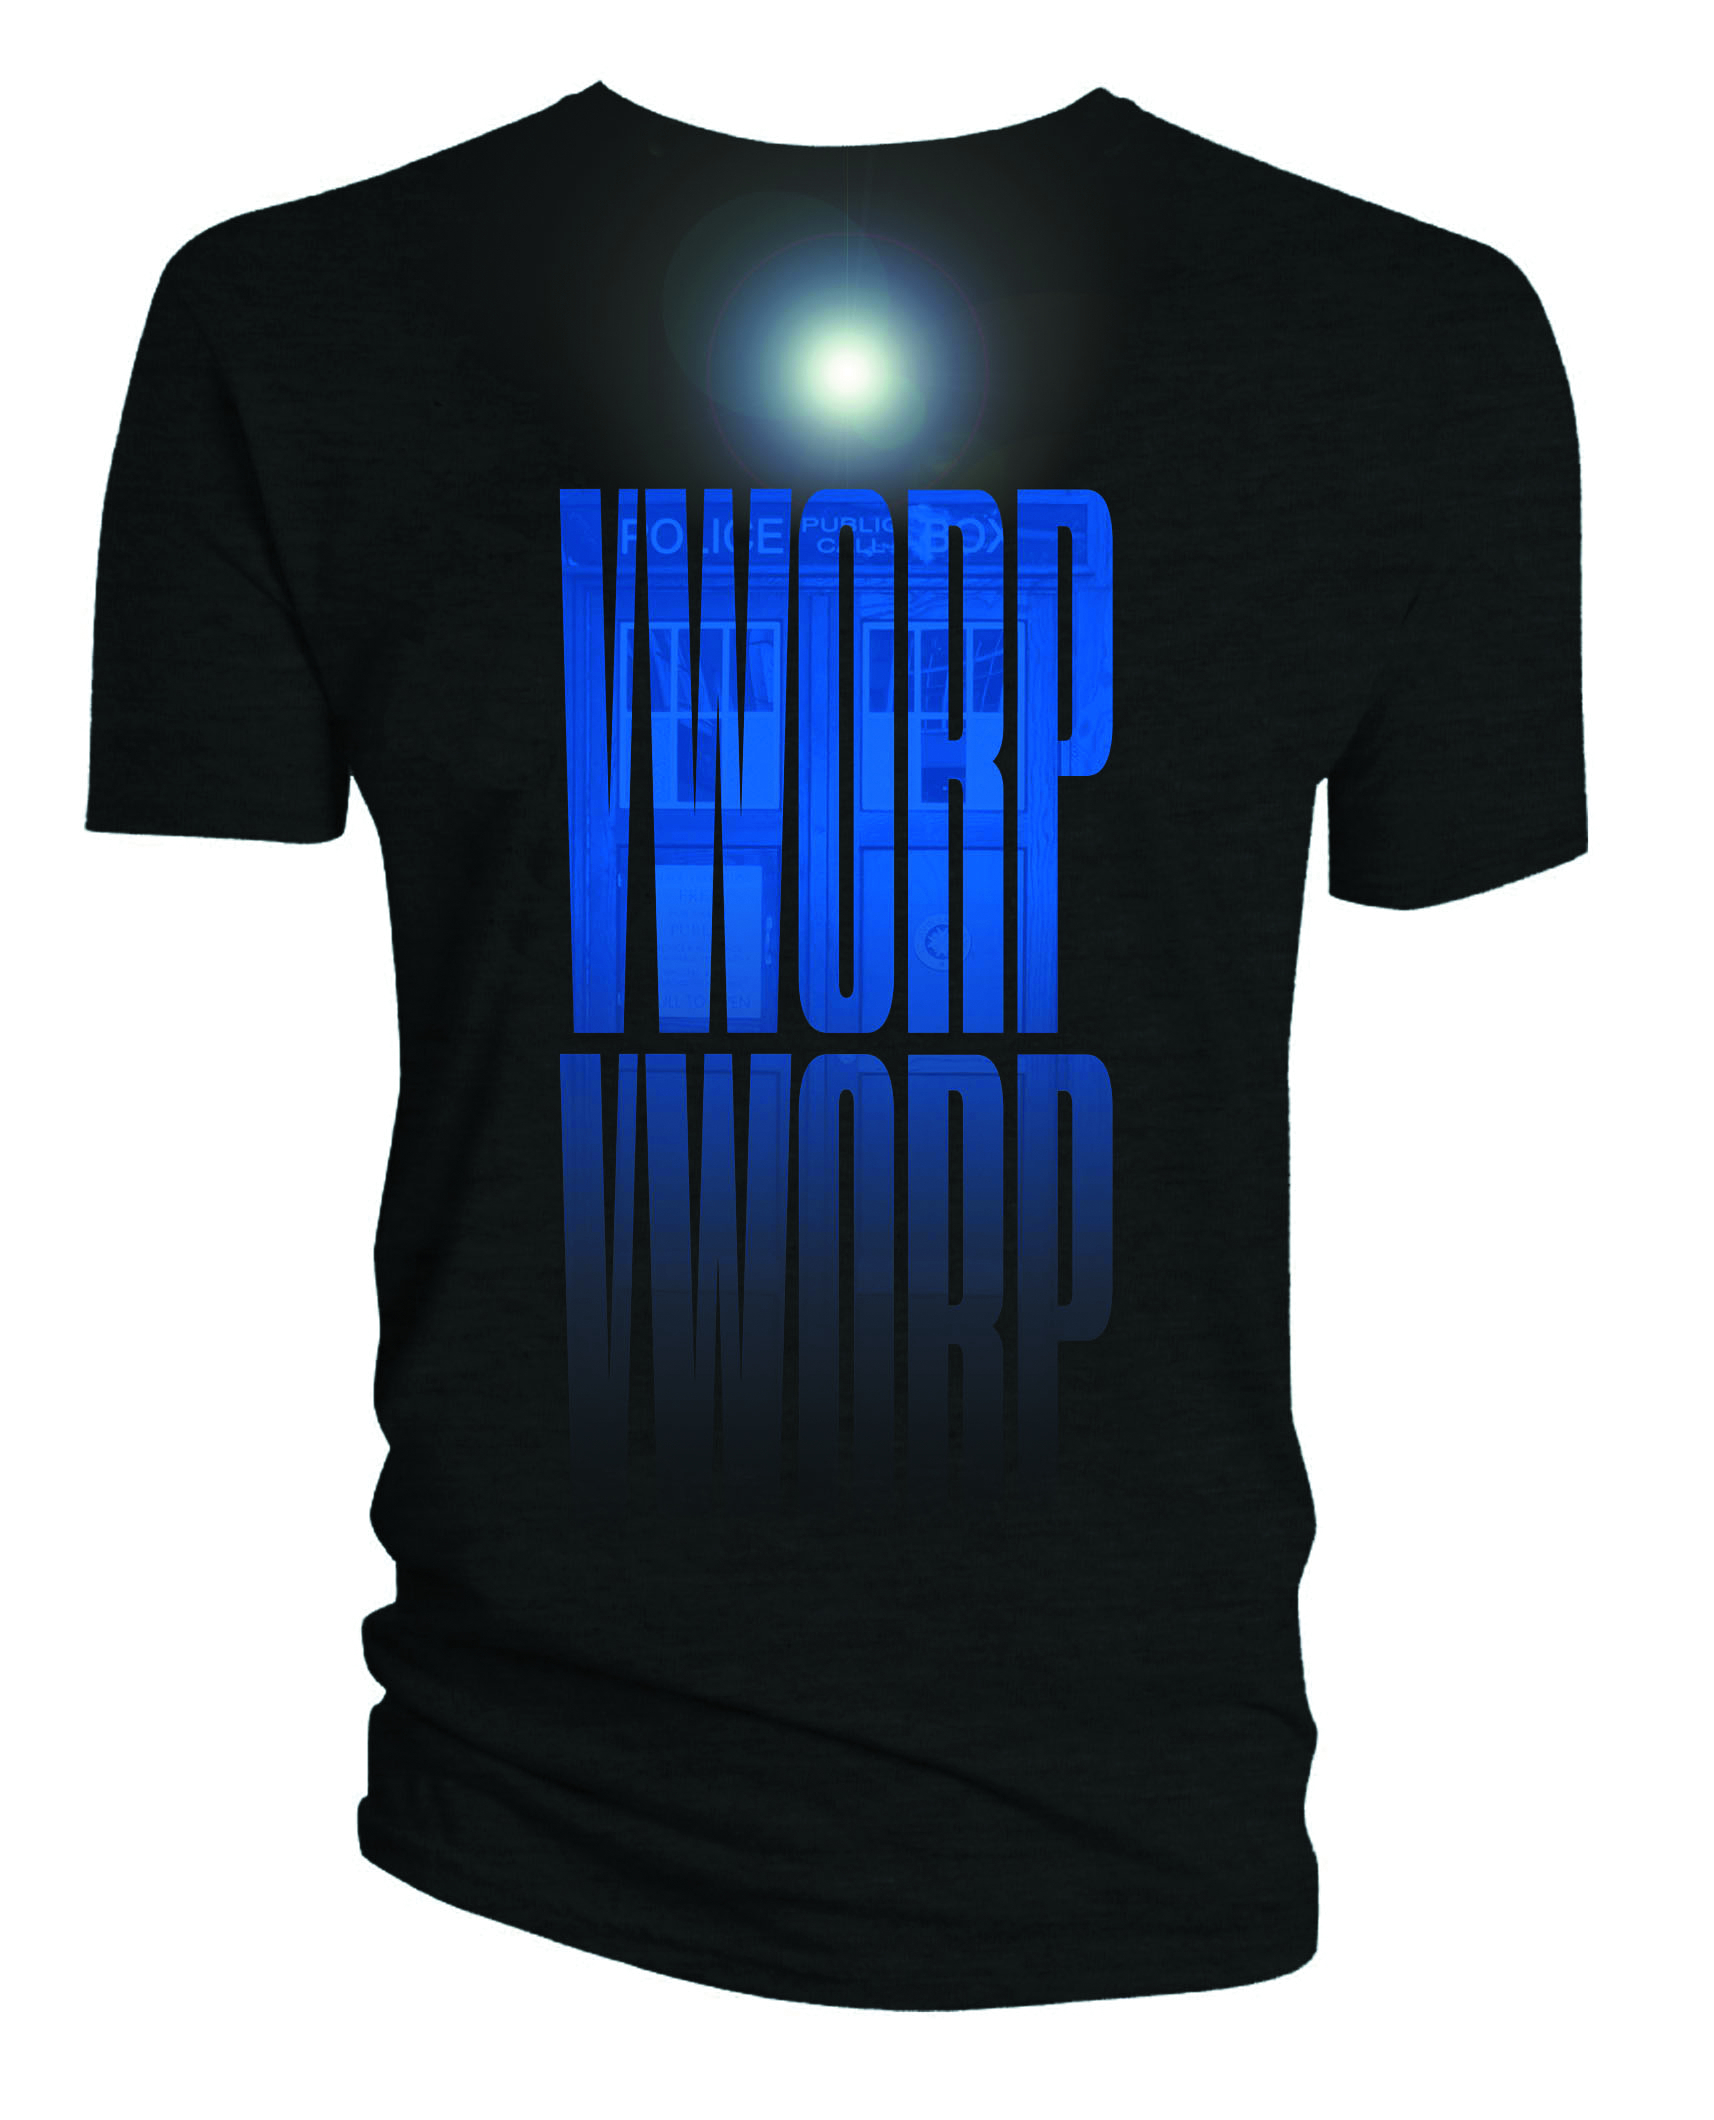 DOCTOR WHO VWORP VWORP TARDIS T/S LG